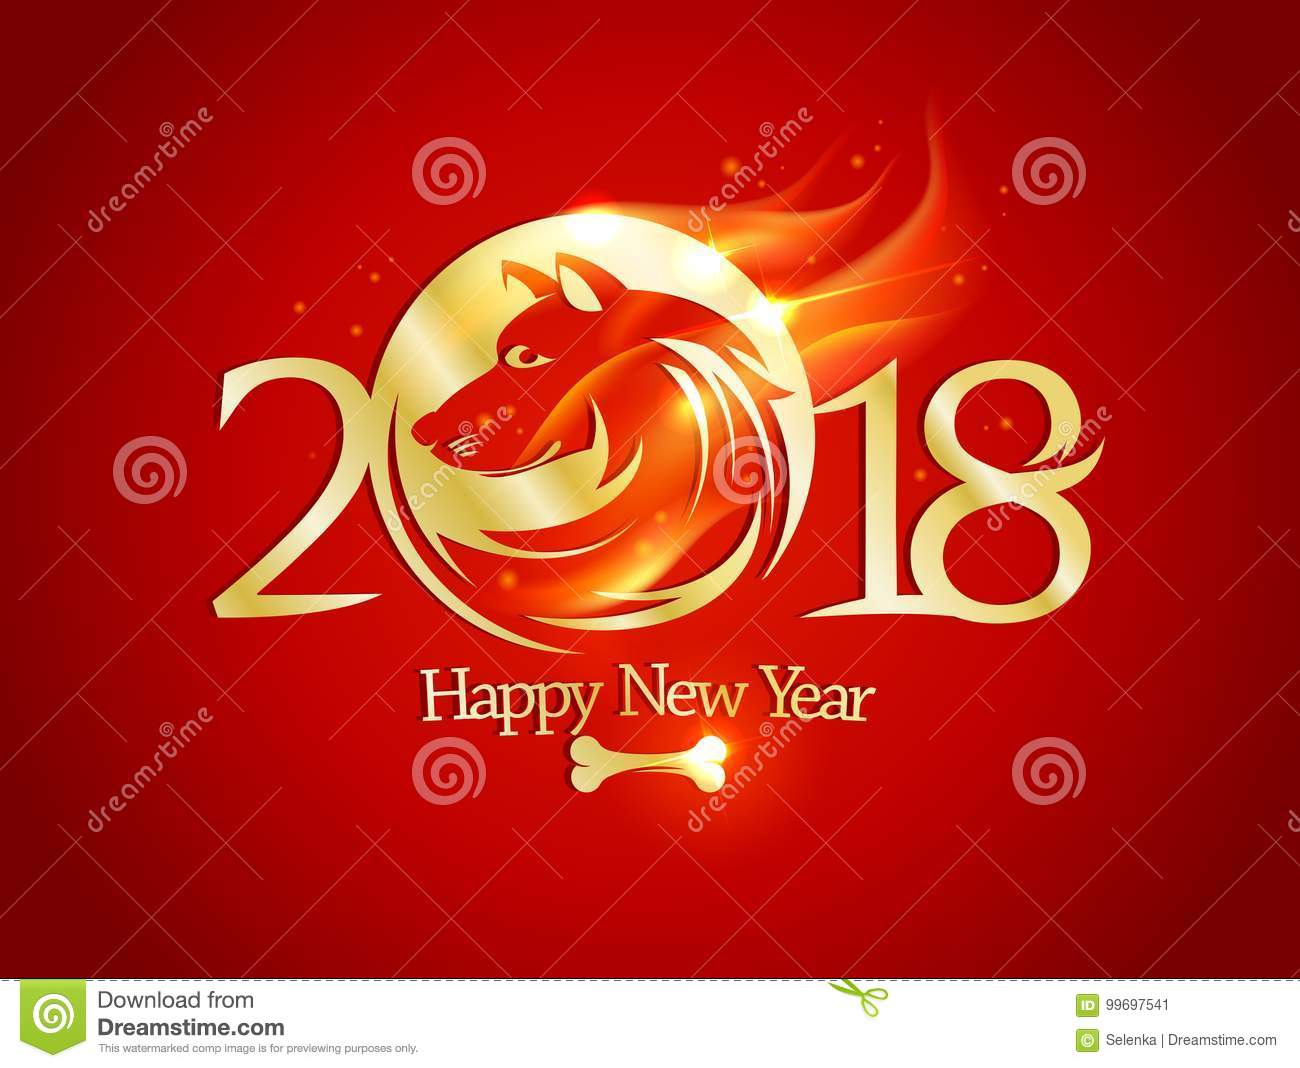 2018 happy new year card with golden dog